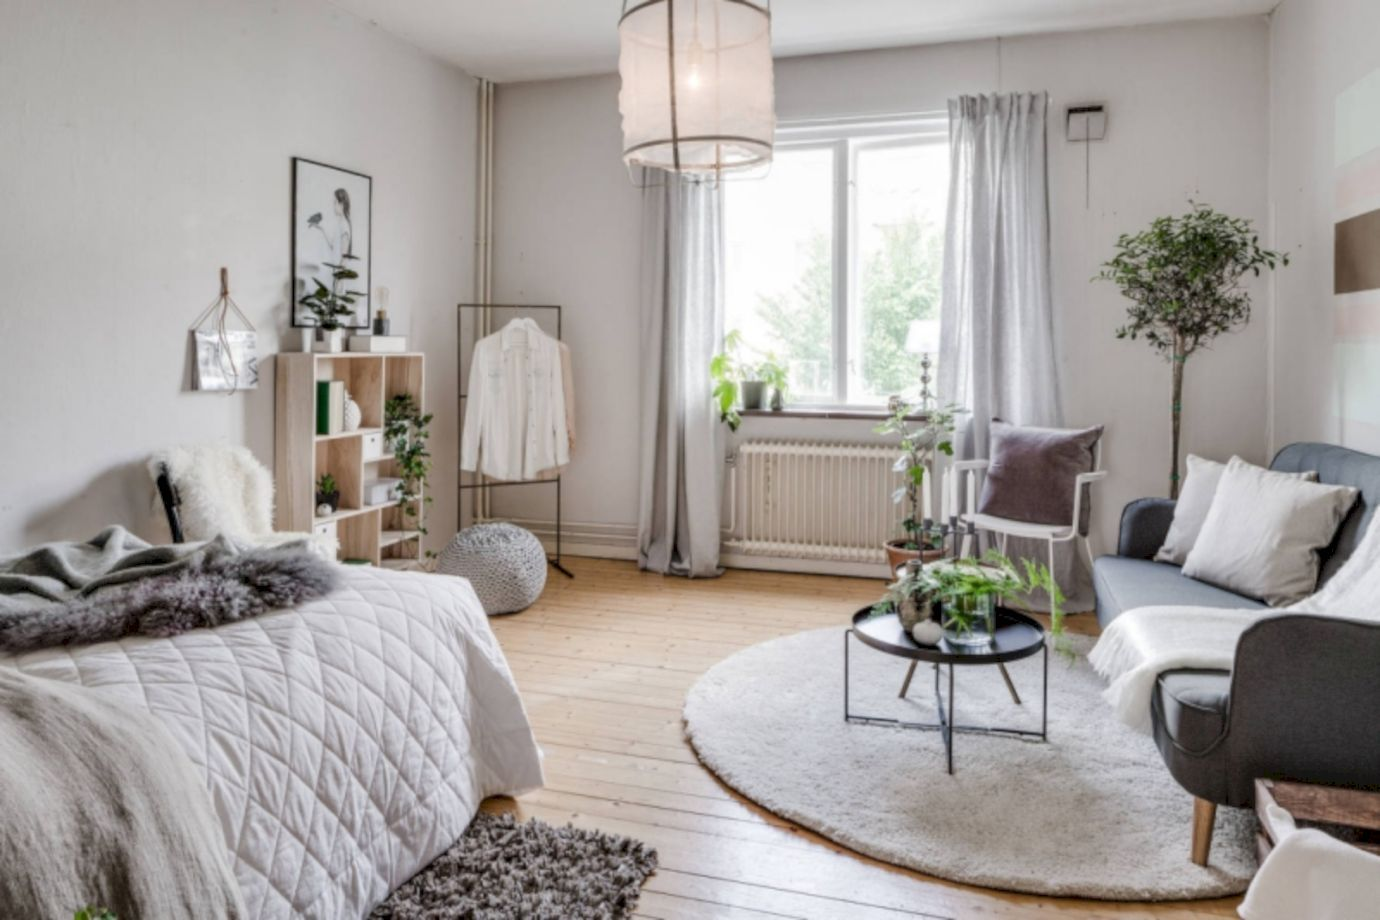 50 Cozy Minimalist Studio Apartment Decor Ideas When I Move To The